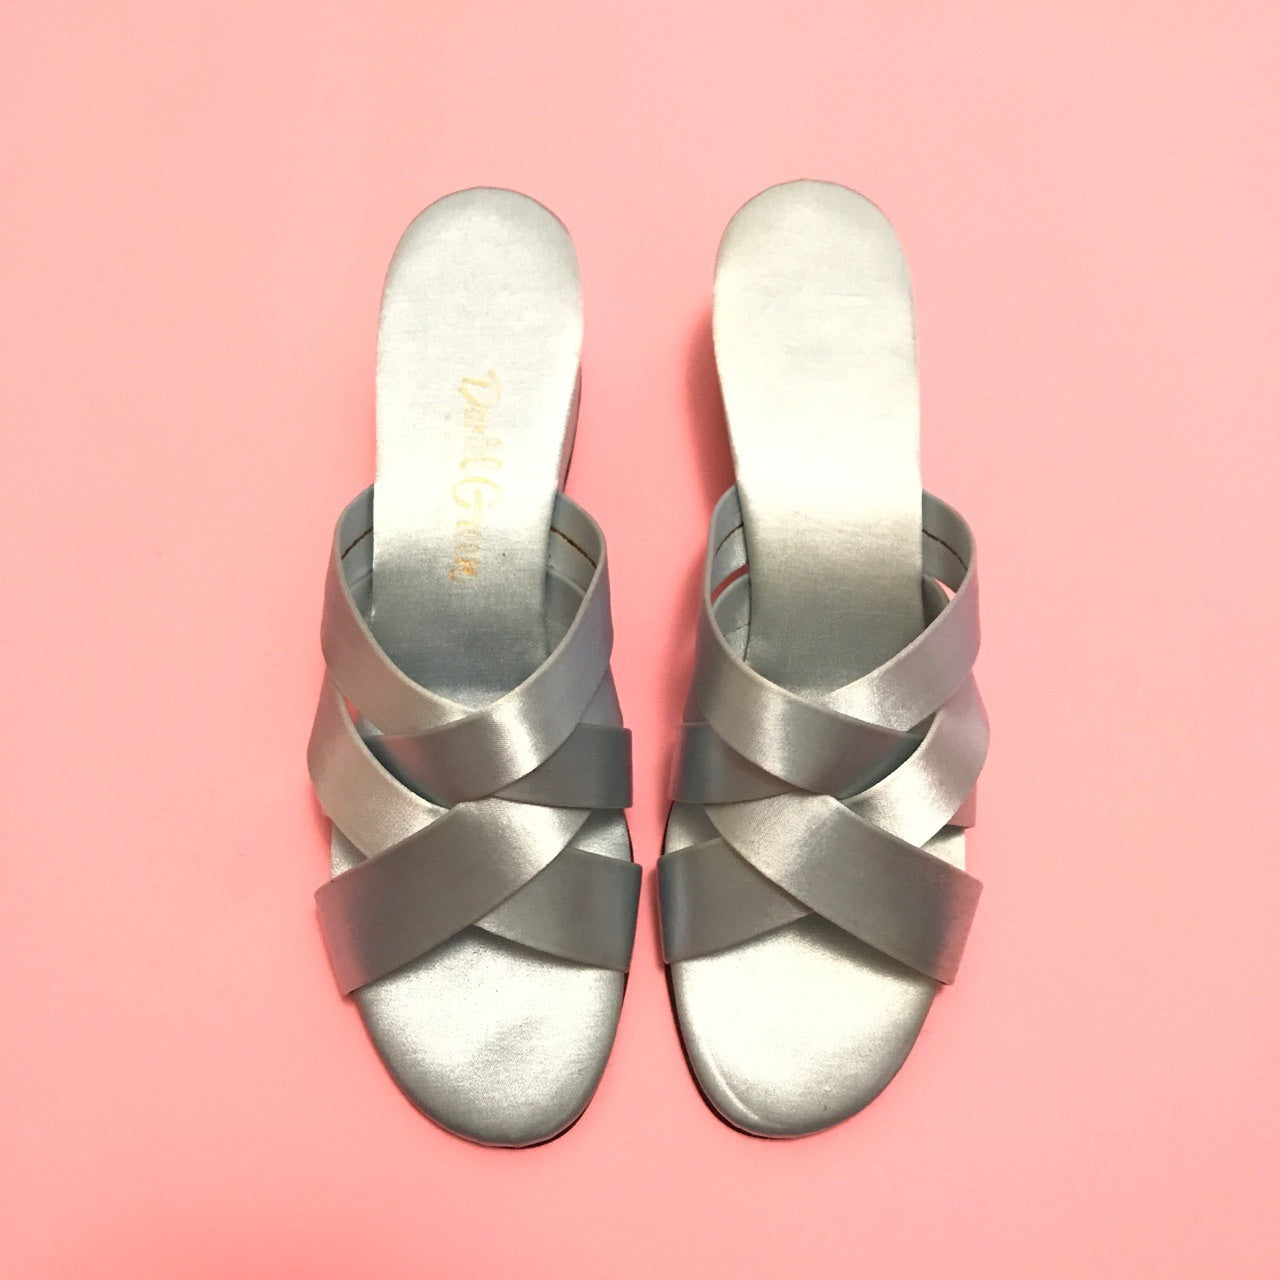 Satin wedge slipper shoes